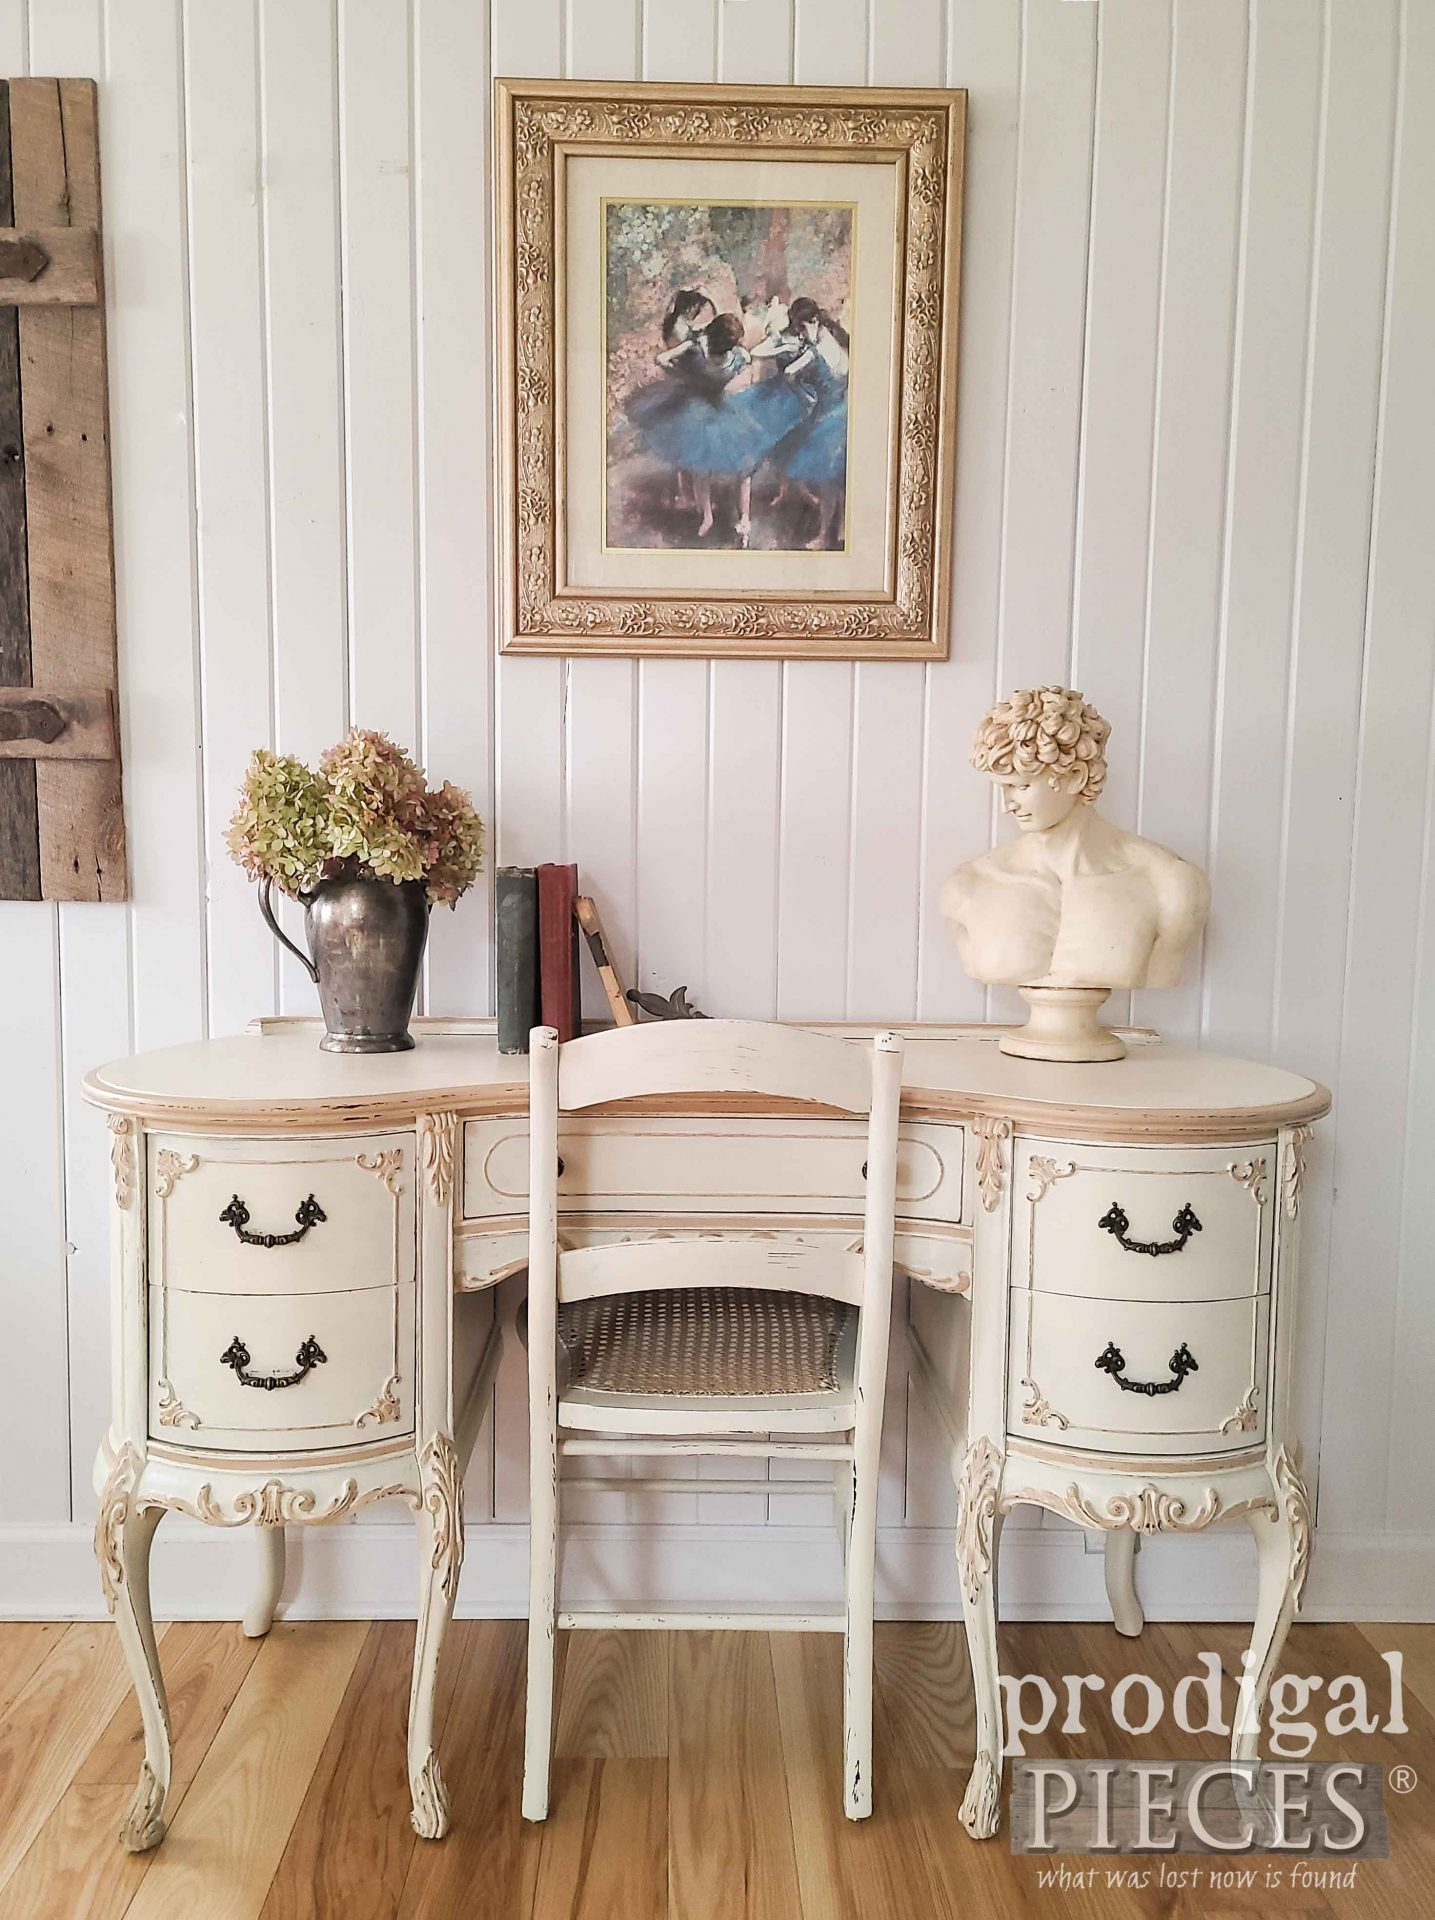 Antique White Vintage French Provincial Desk and Chair by Prodigal Pieces | prodigalpieces.com #prodigalpieces #furniture #shabbychic #home #homedecor